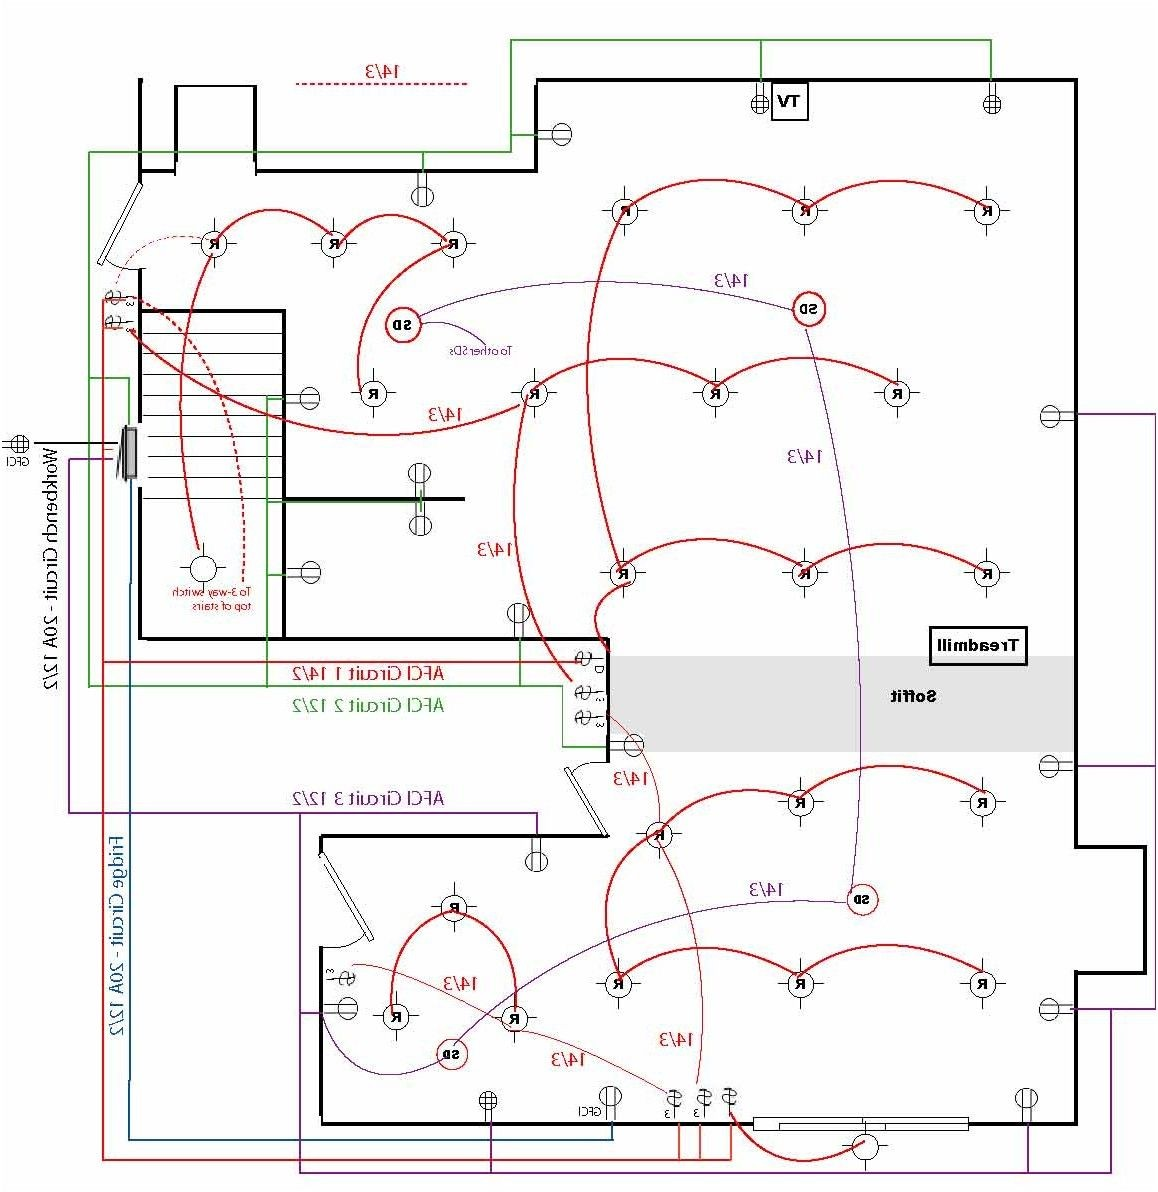 Basement Electrical Wiring Layout Diagram Services House Plans For 60a Rh Florianvl Co Code Home Diagrams